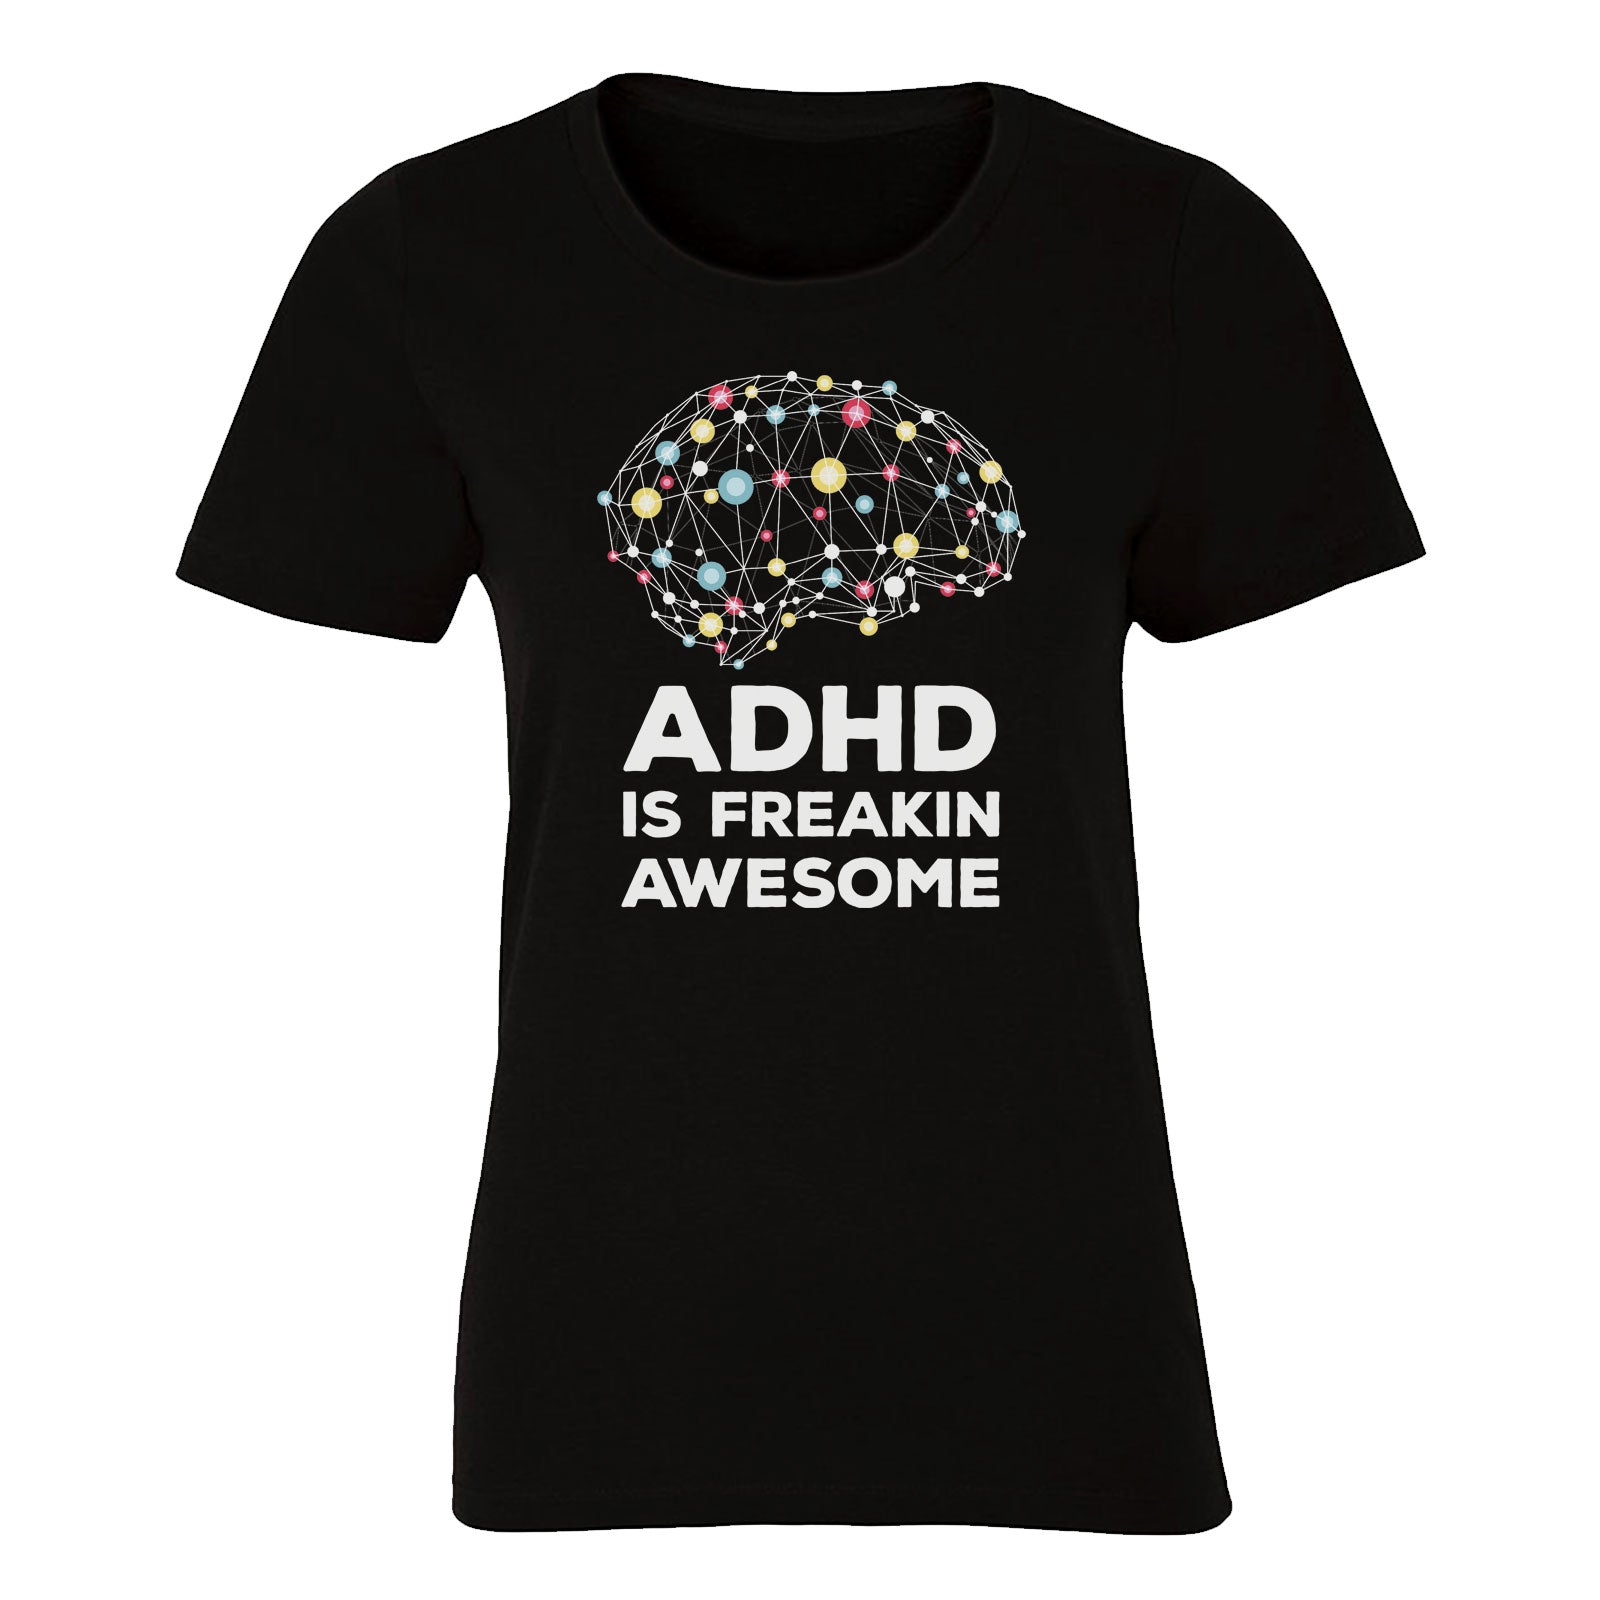 ADHD is Freakin Awesome (Women's)